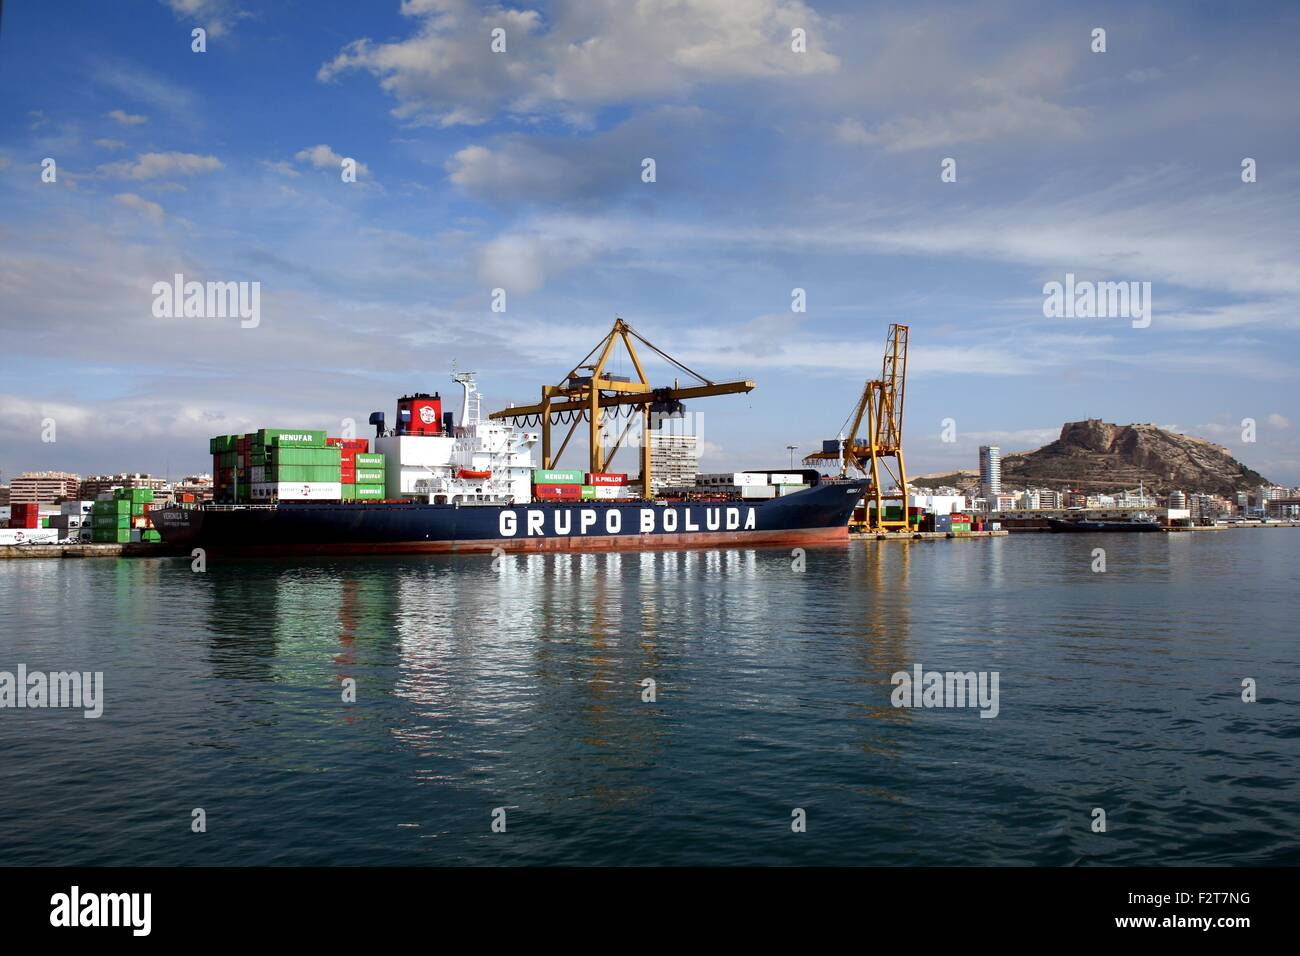 Containership docked - Stock Image